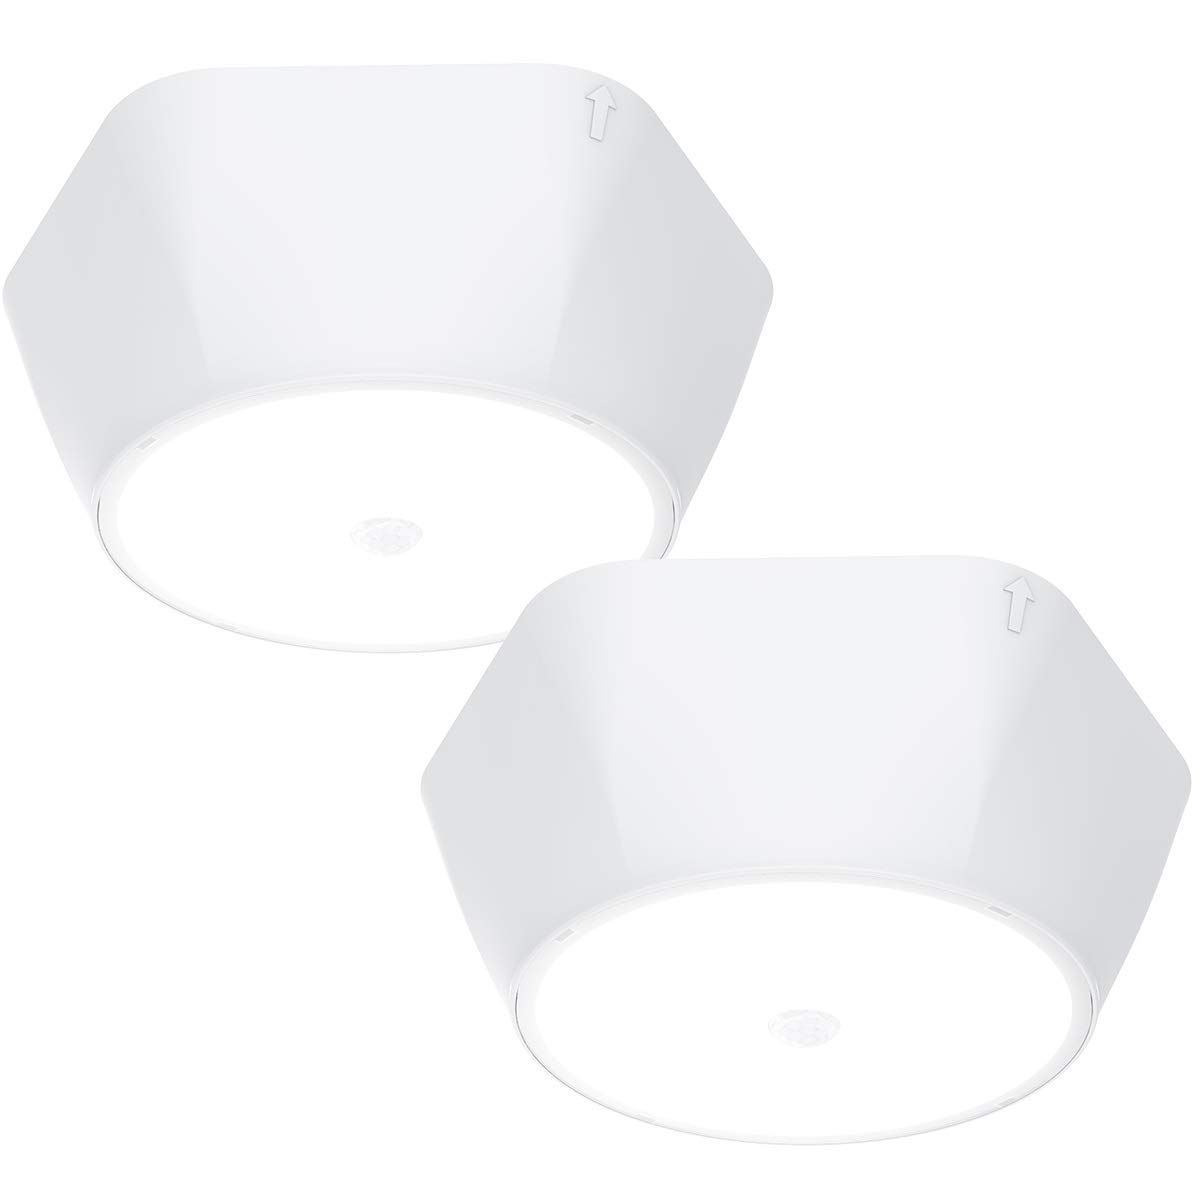 15ft Energizer Motion Activated Led Ceiling Light Battery Operated Motion Sensing And More Great For Laundry Room 300 Lumens Closets No Wiring Needed Garage 39677 Ceiling Lights Lighting Ceiling Fans